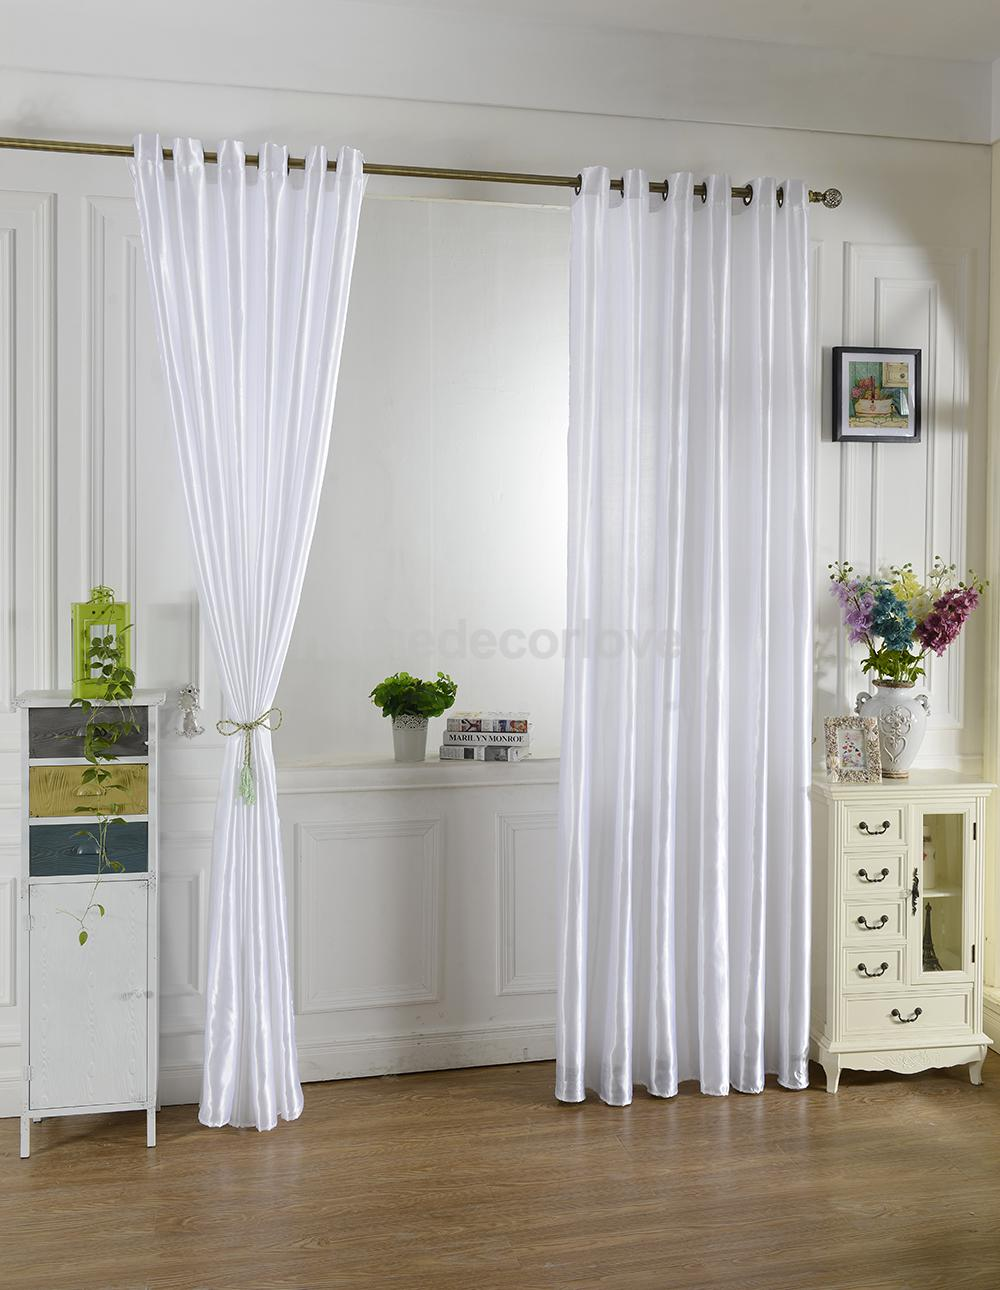 100x200cm Modern Jacquard Window Room Panel Shade Curtain Drape Blind